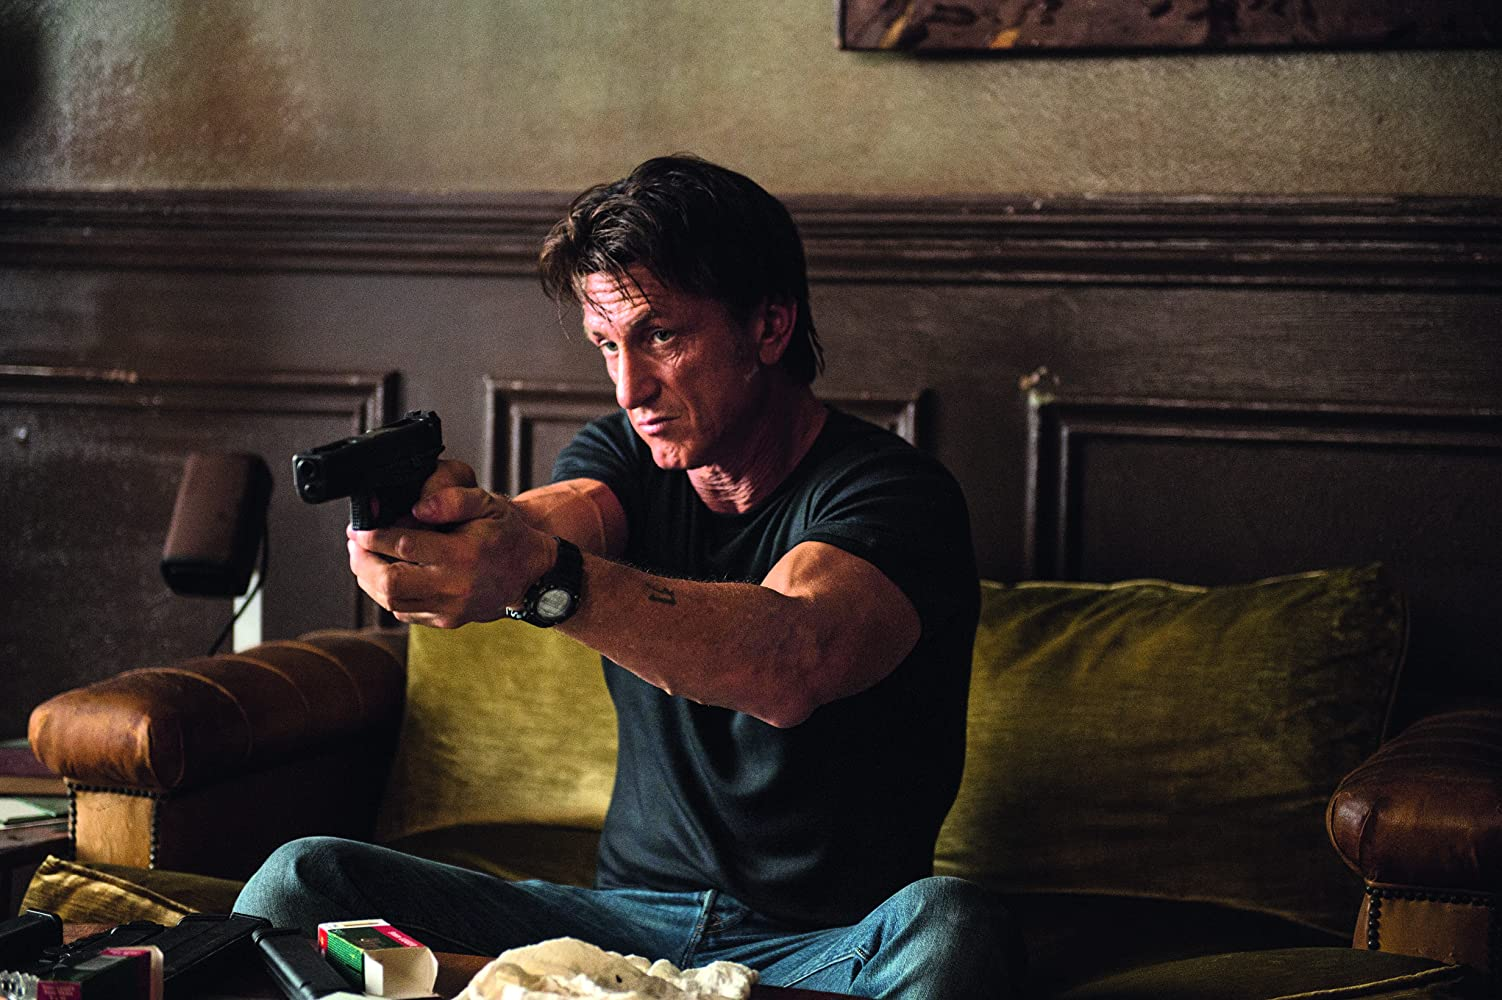 Sean Penn in The Gunman (2015)